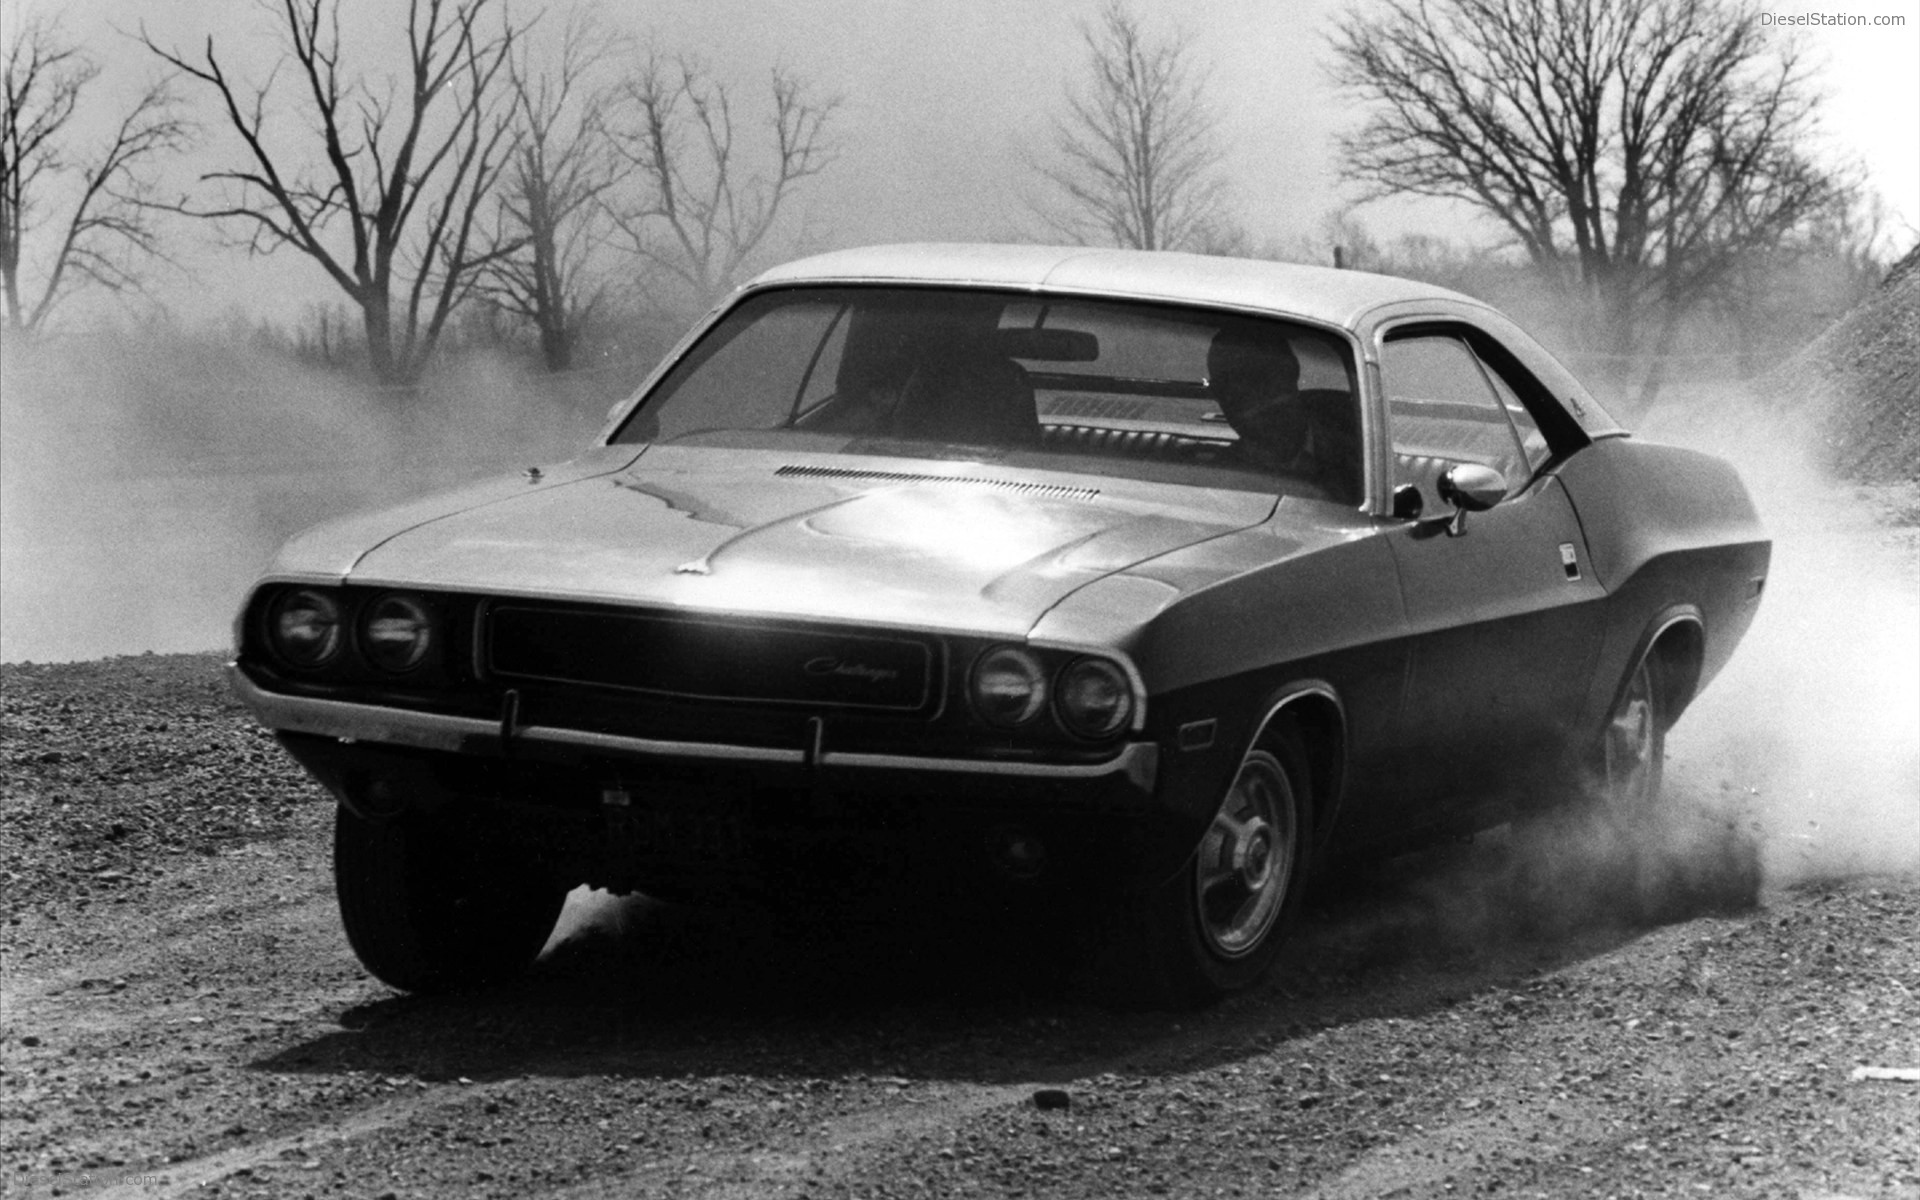 Dodge Challenger 1970 Wallpaper 1970 Dodge Challenger Hd Wallpaper Background Image 1920x1200